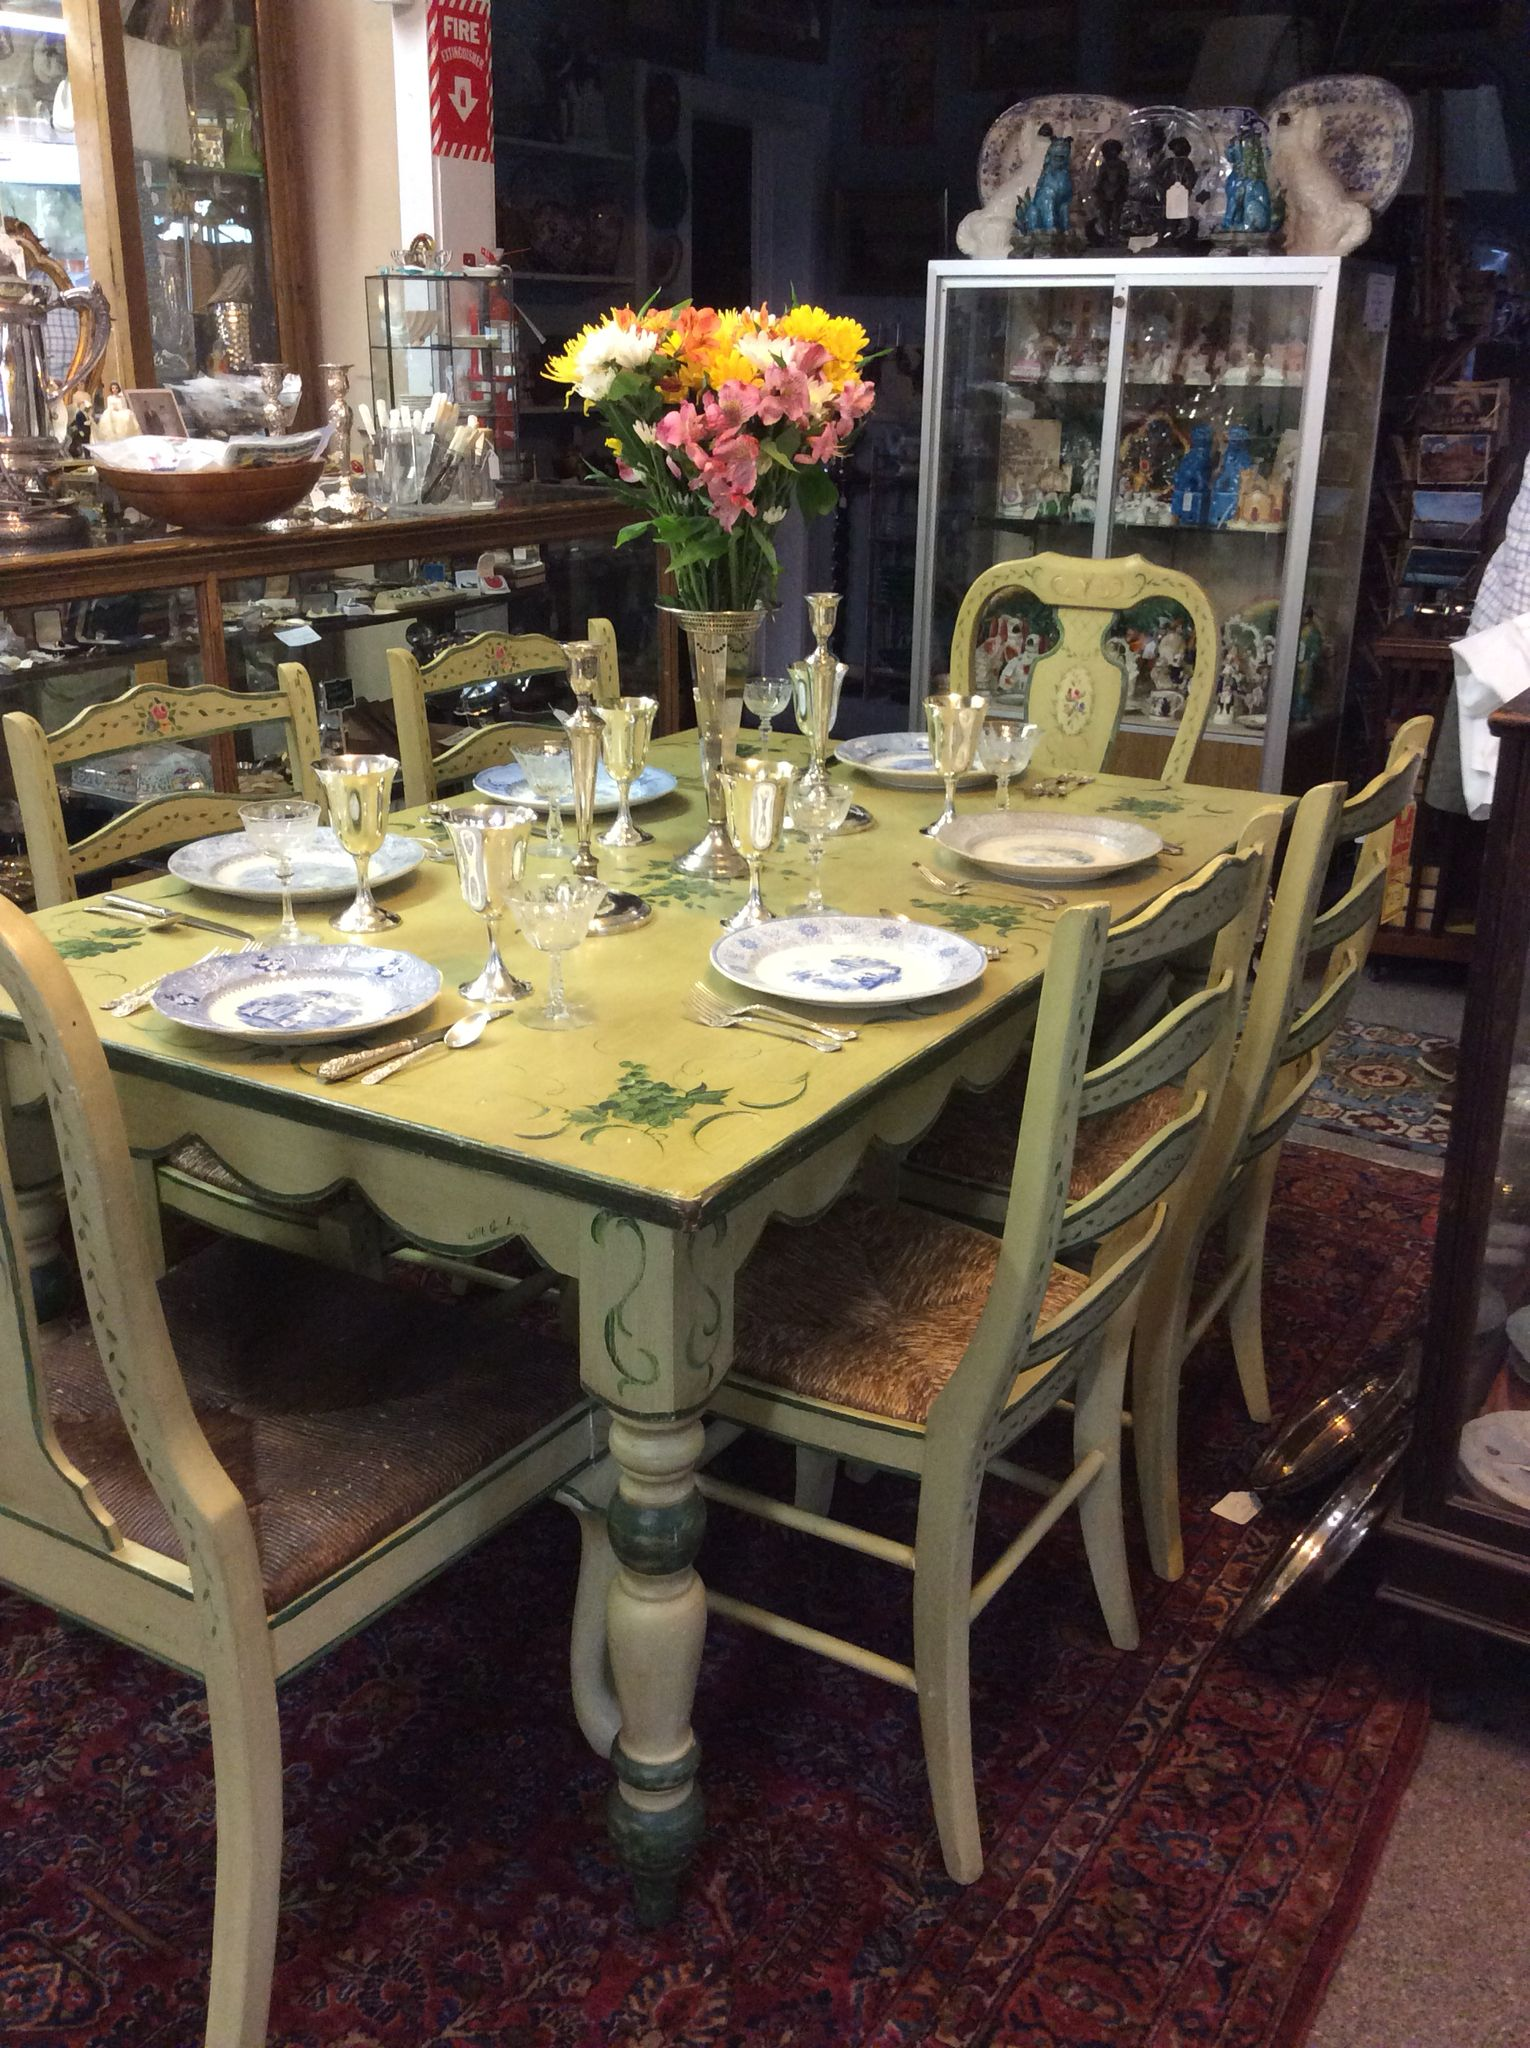 LoVe this painted table set with beautiful sterling and transferware!